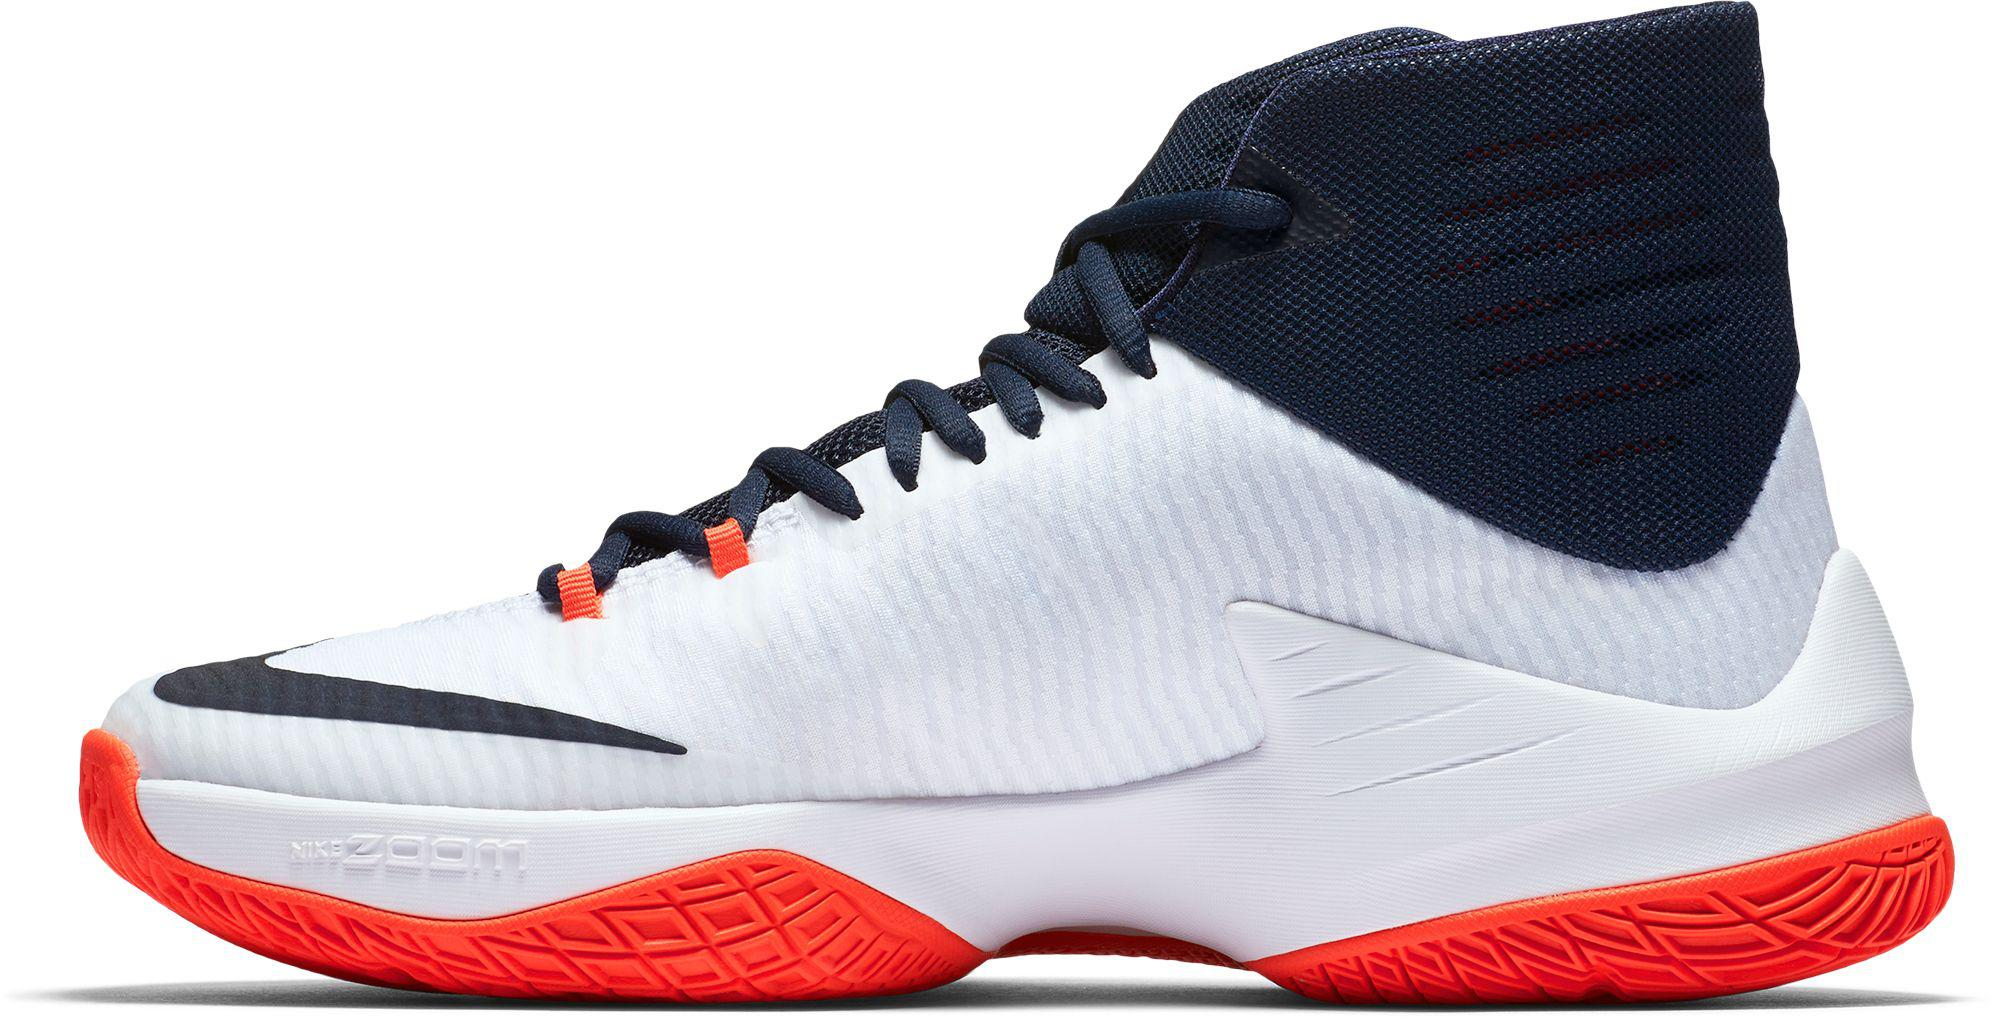 4e578639610e nike-WhiteObsidian-Zoom-Clear-Out-Basketball-Shoes.jpeg